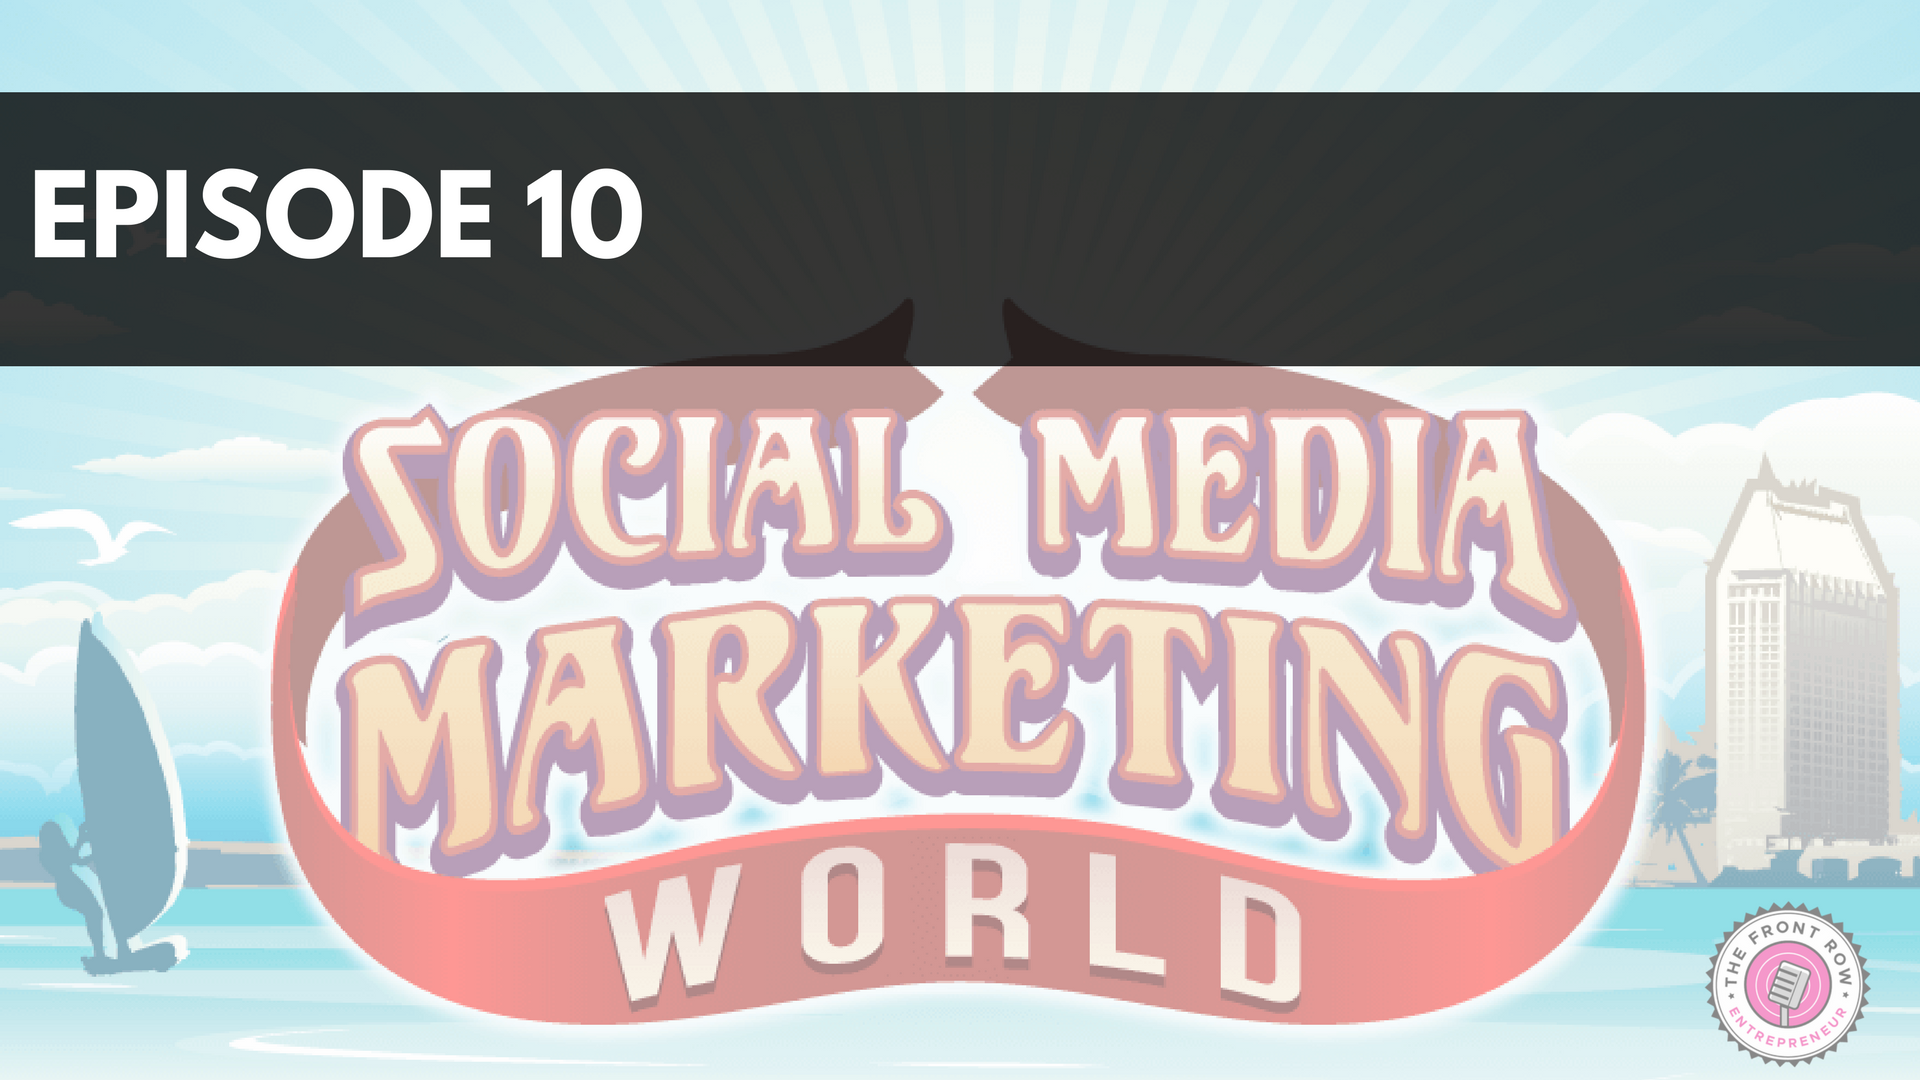 My Takeaways from Social Media Marketing World 2018 - Social Media Marketing World is the ultimate conference for digital marketers. In this episode I share with you my takeaways.